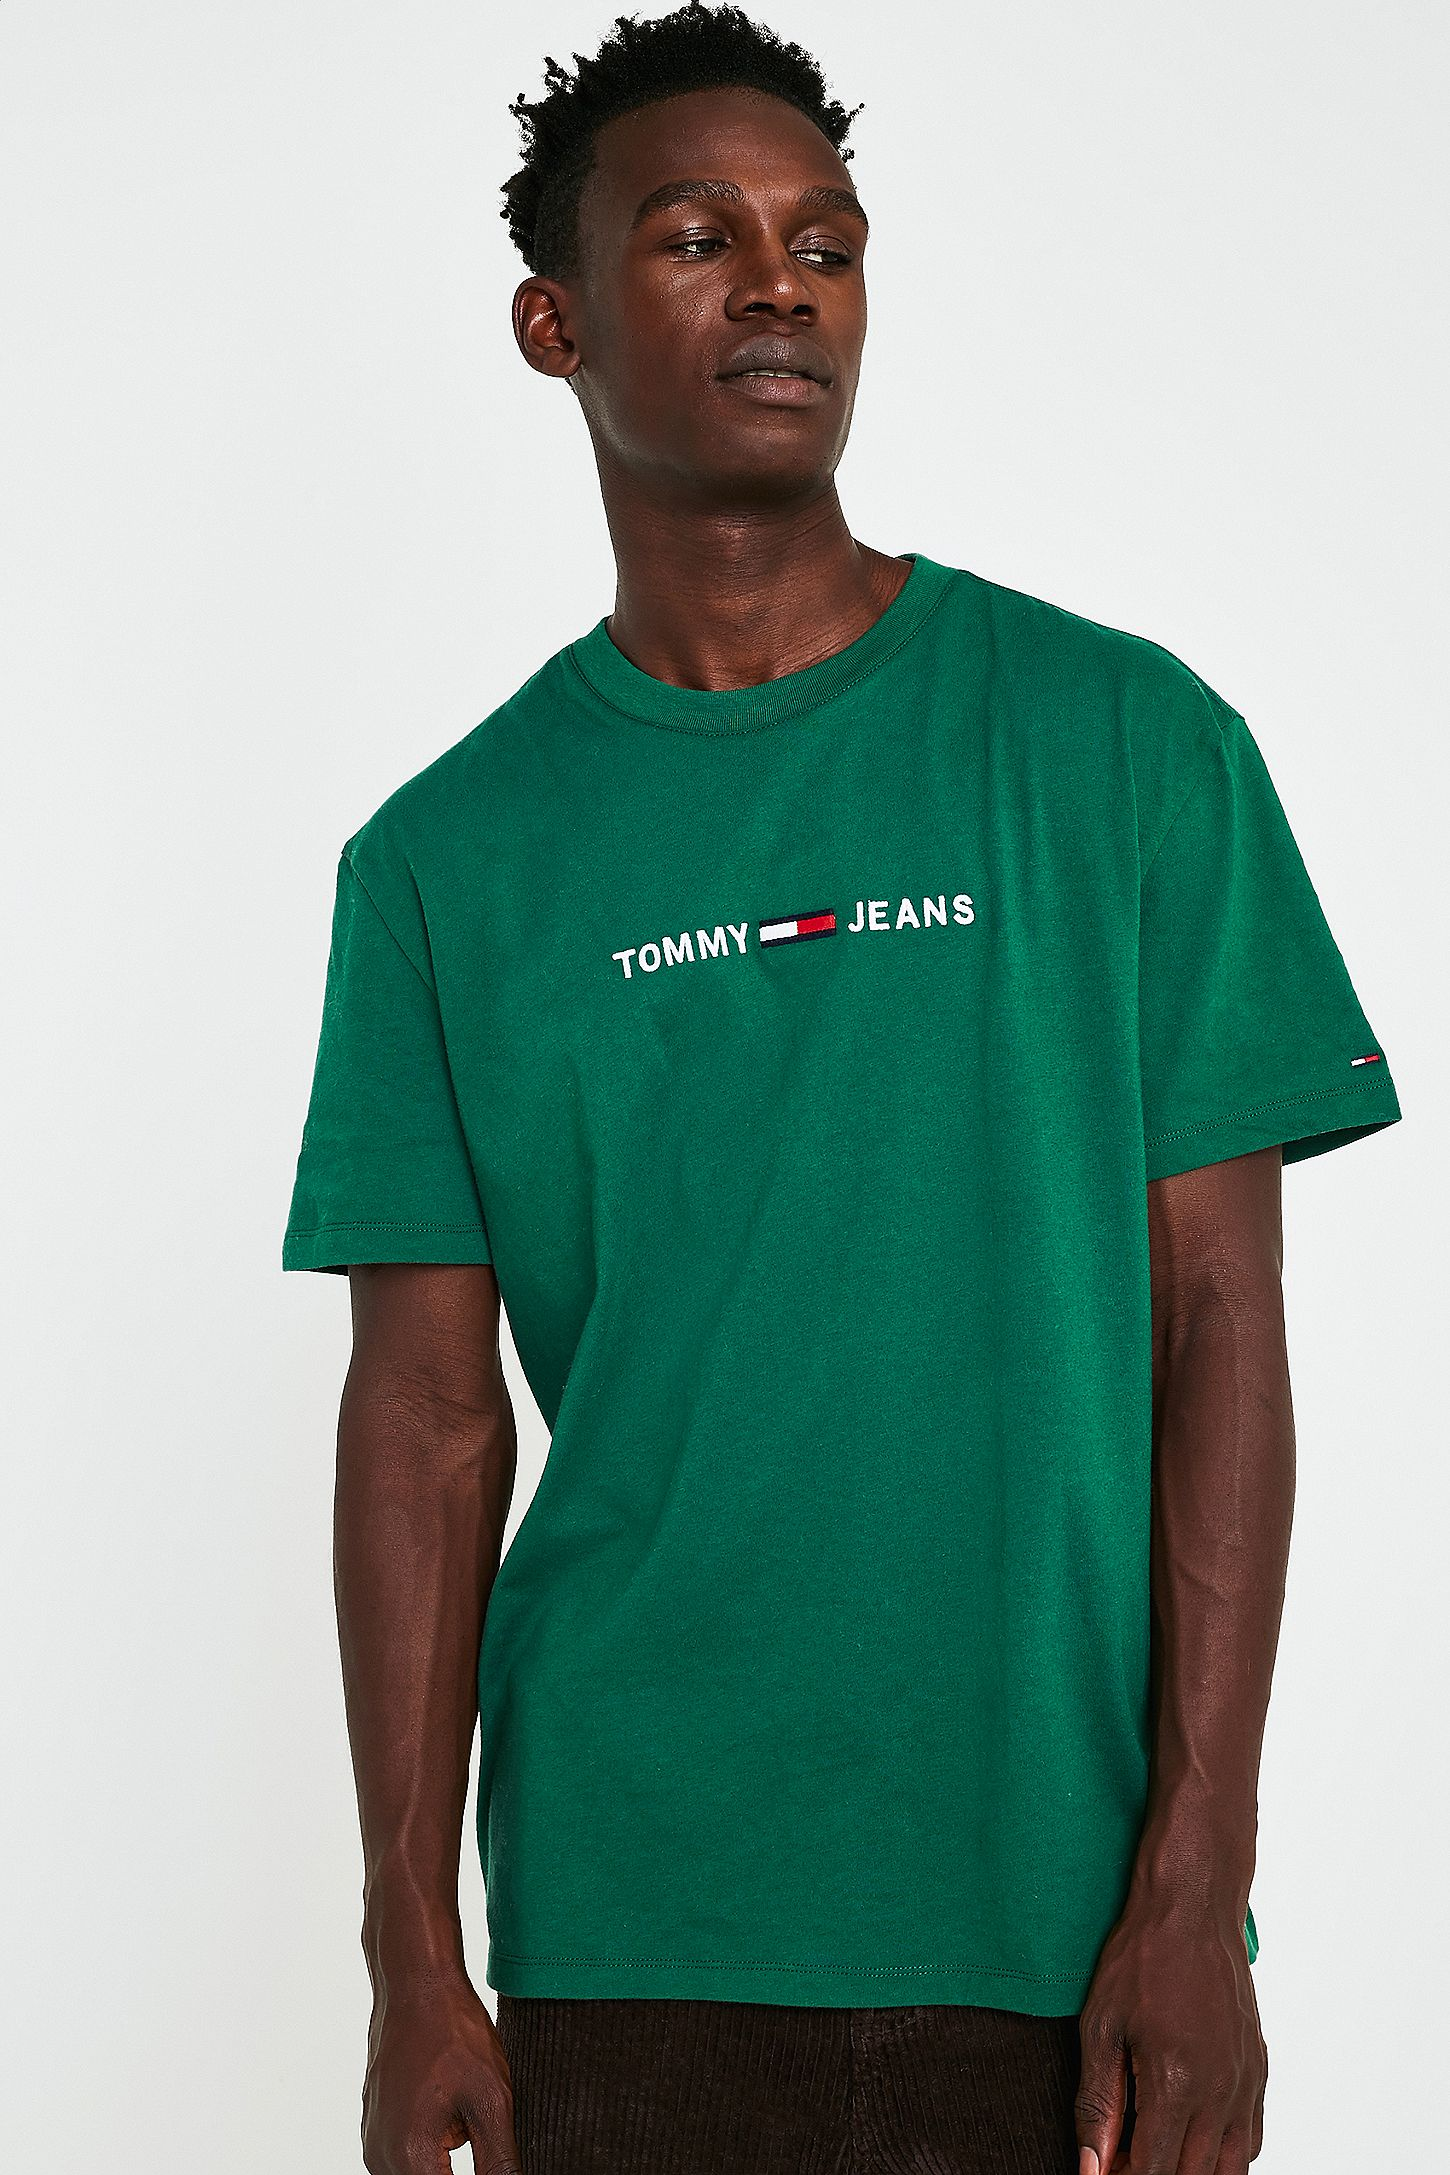 1c86049f Tommy Jeans Green Logo Text T-Shirt. Click on image to zoom. Hover to zoom.  Double Tap to Zoom